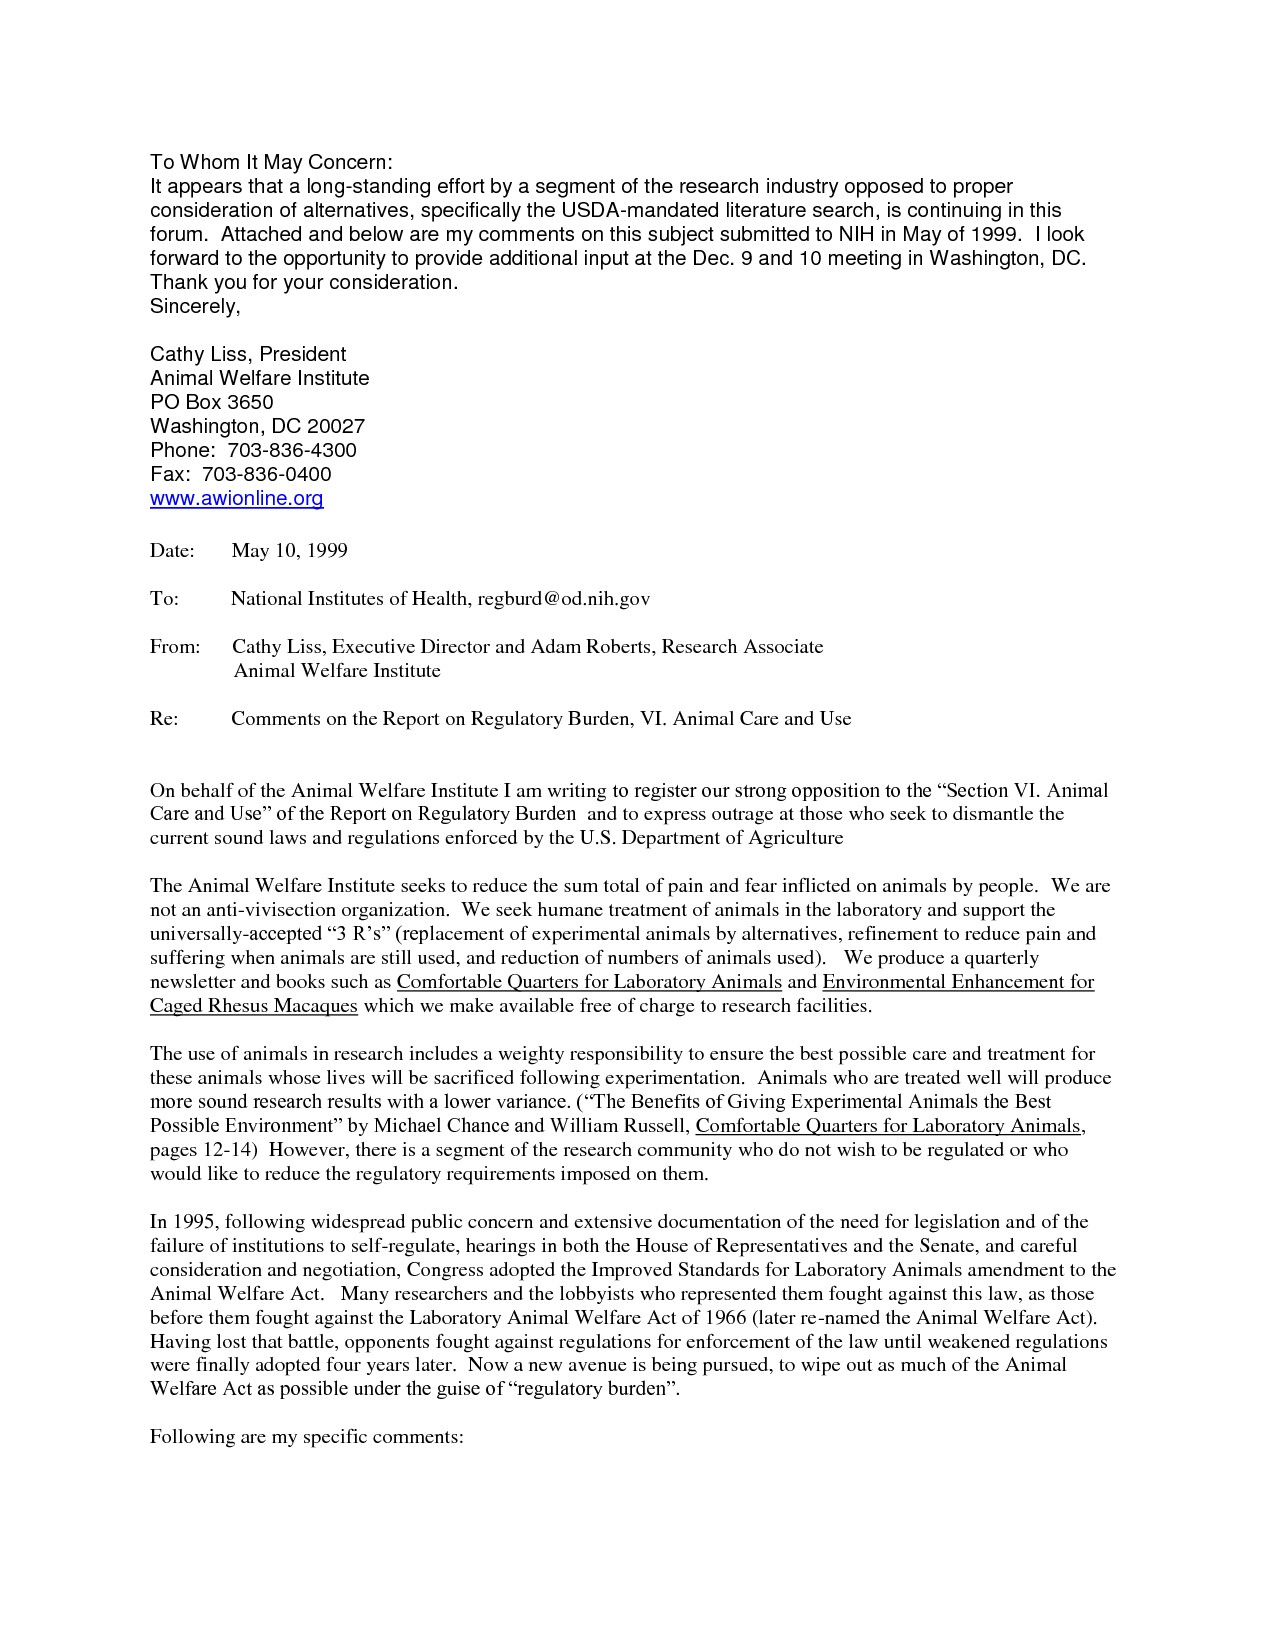 Cease and Desist Letter Template Amazon - Resume Templates Page 5